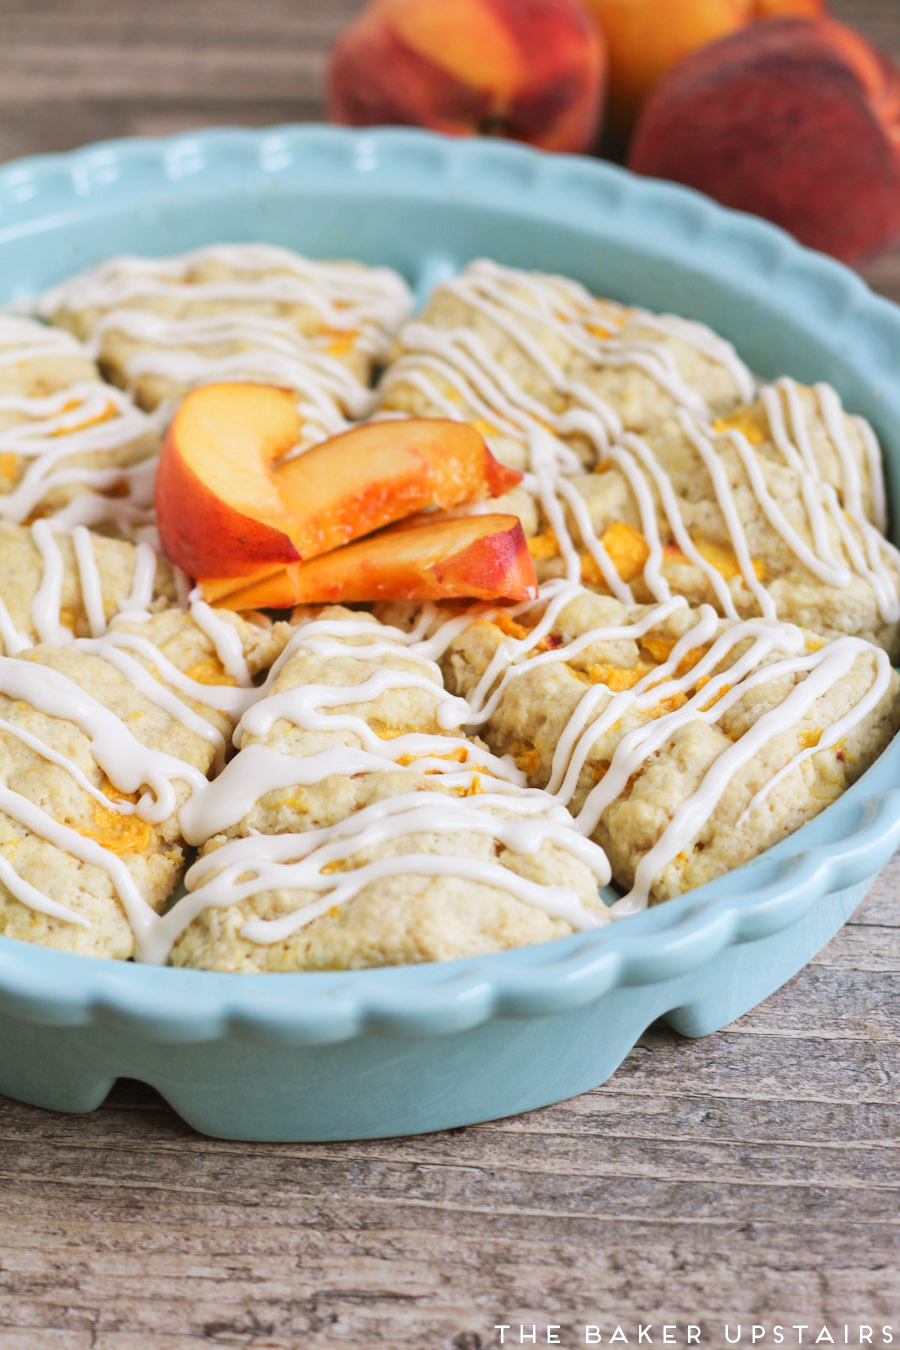 the baker upstairs: peaches and cream scones